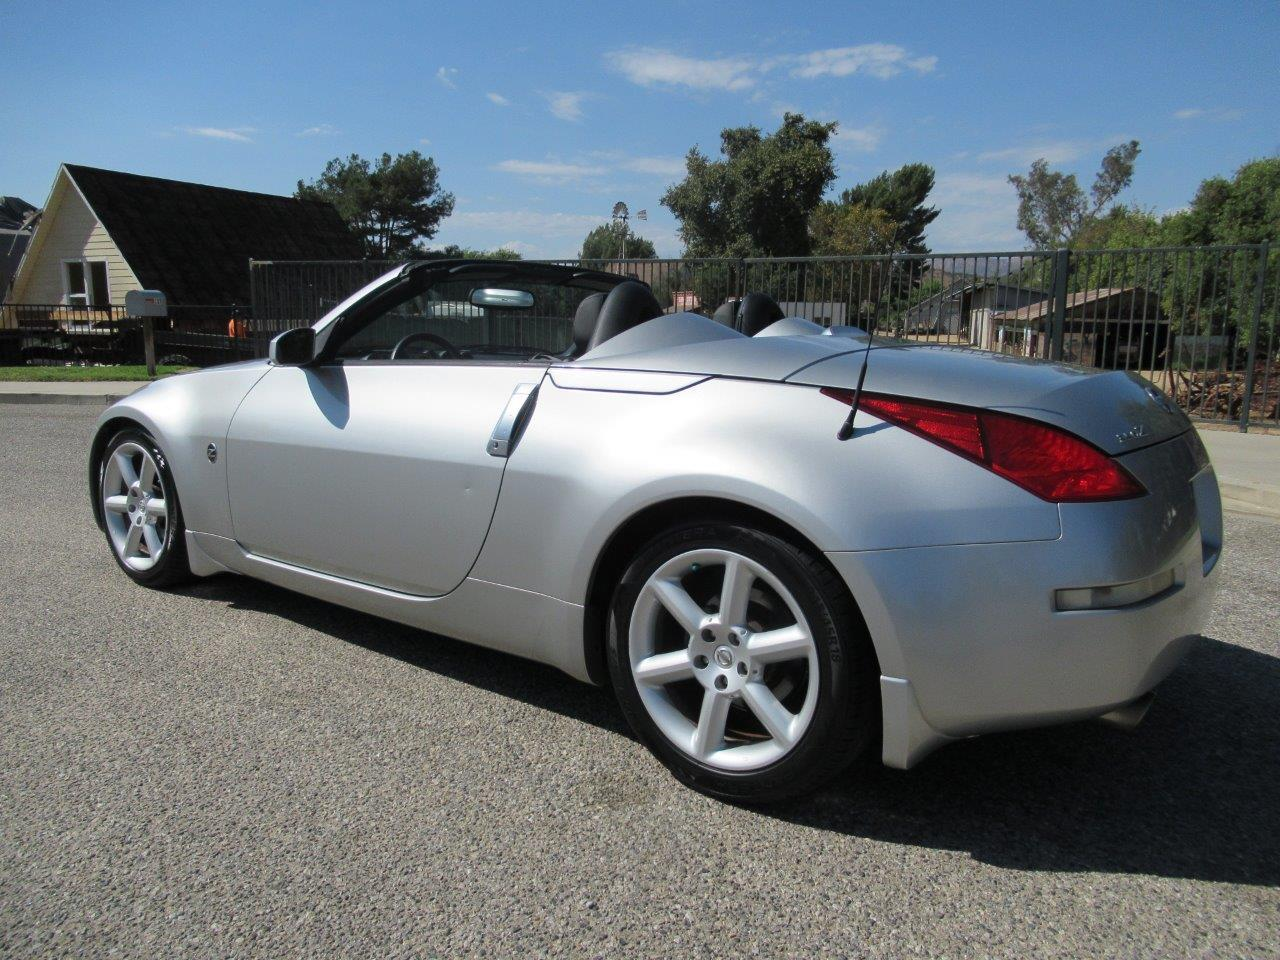 Large Picture of '05 Nissan 350Z located in SIMI VALLEY California - $7,950.00 - QXLK